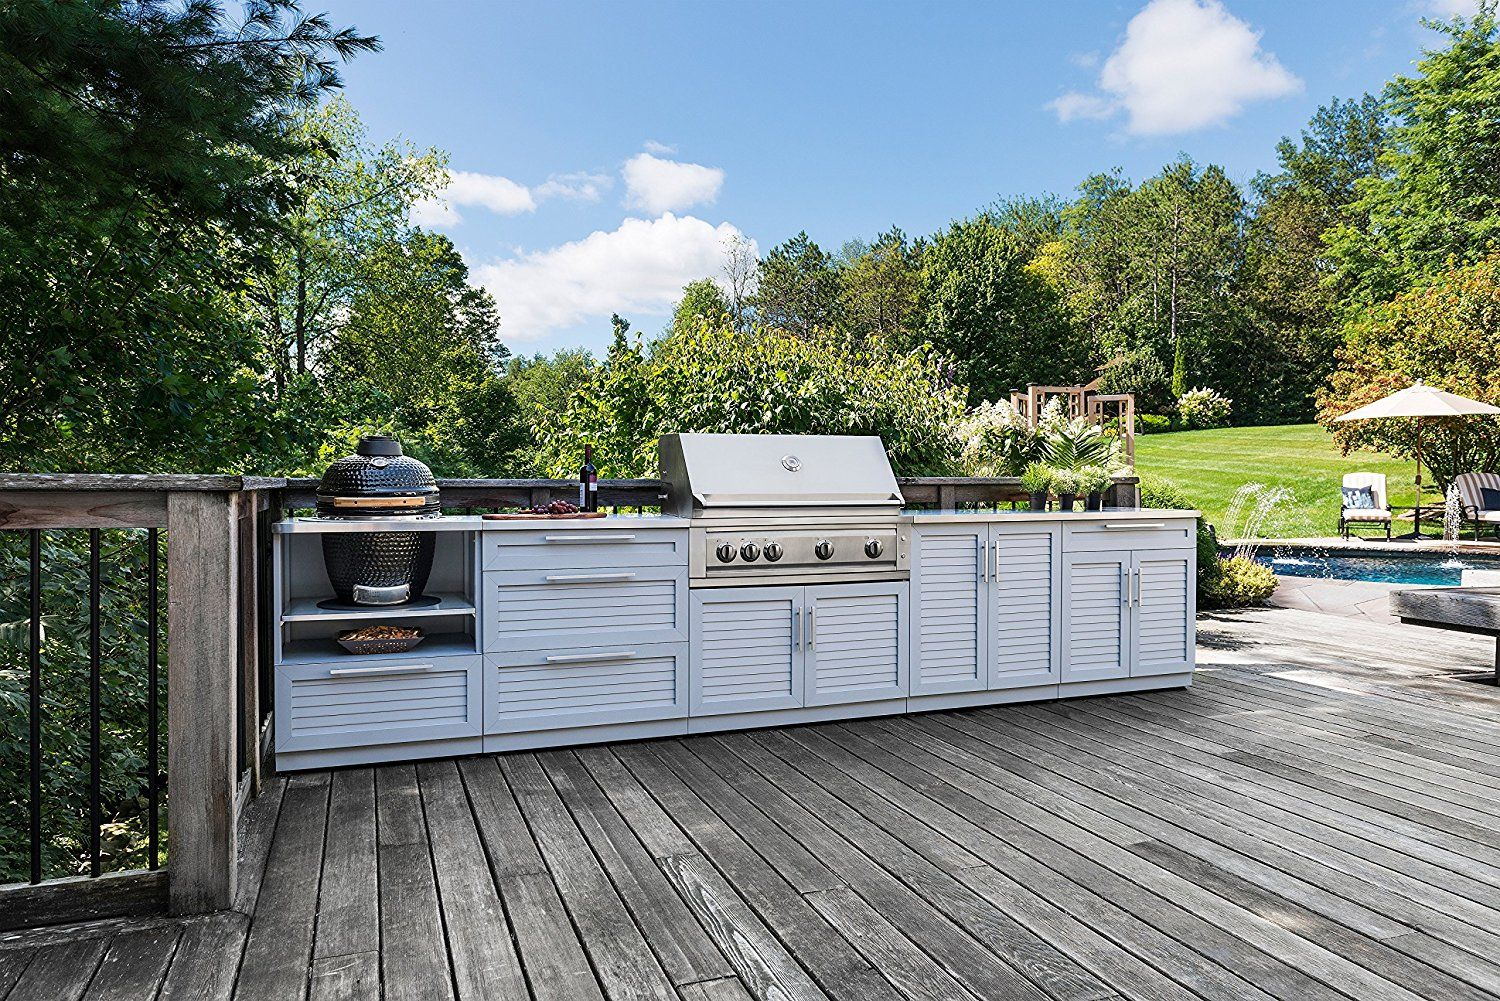 Outdoor Kitchen Is Ready For All Season Entertaining Louvered Doors Stainless Steel Handles And Powder Coated Paint Fin Outdoor Outdoor Kitchen Backyard Fun